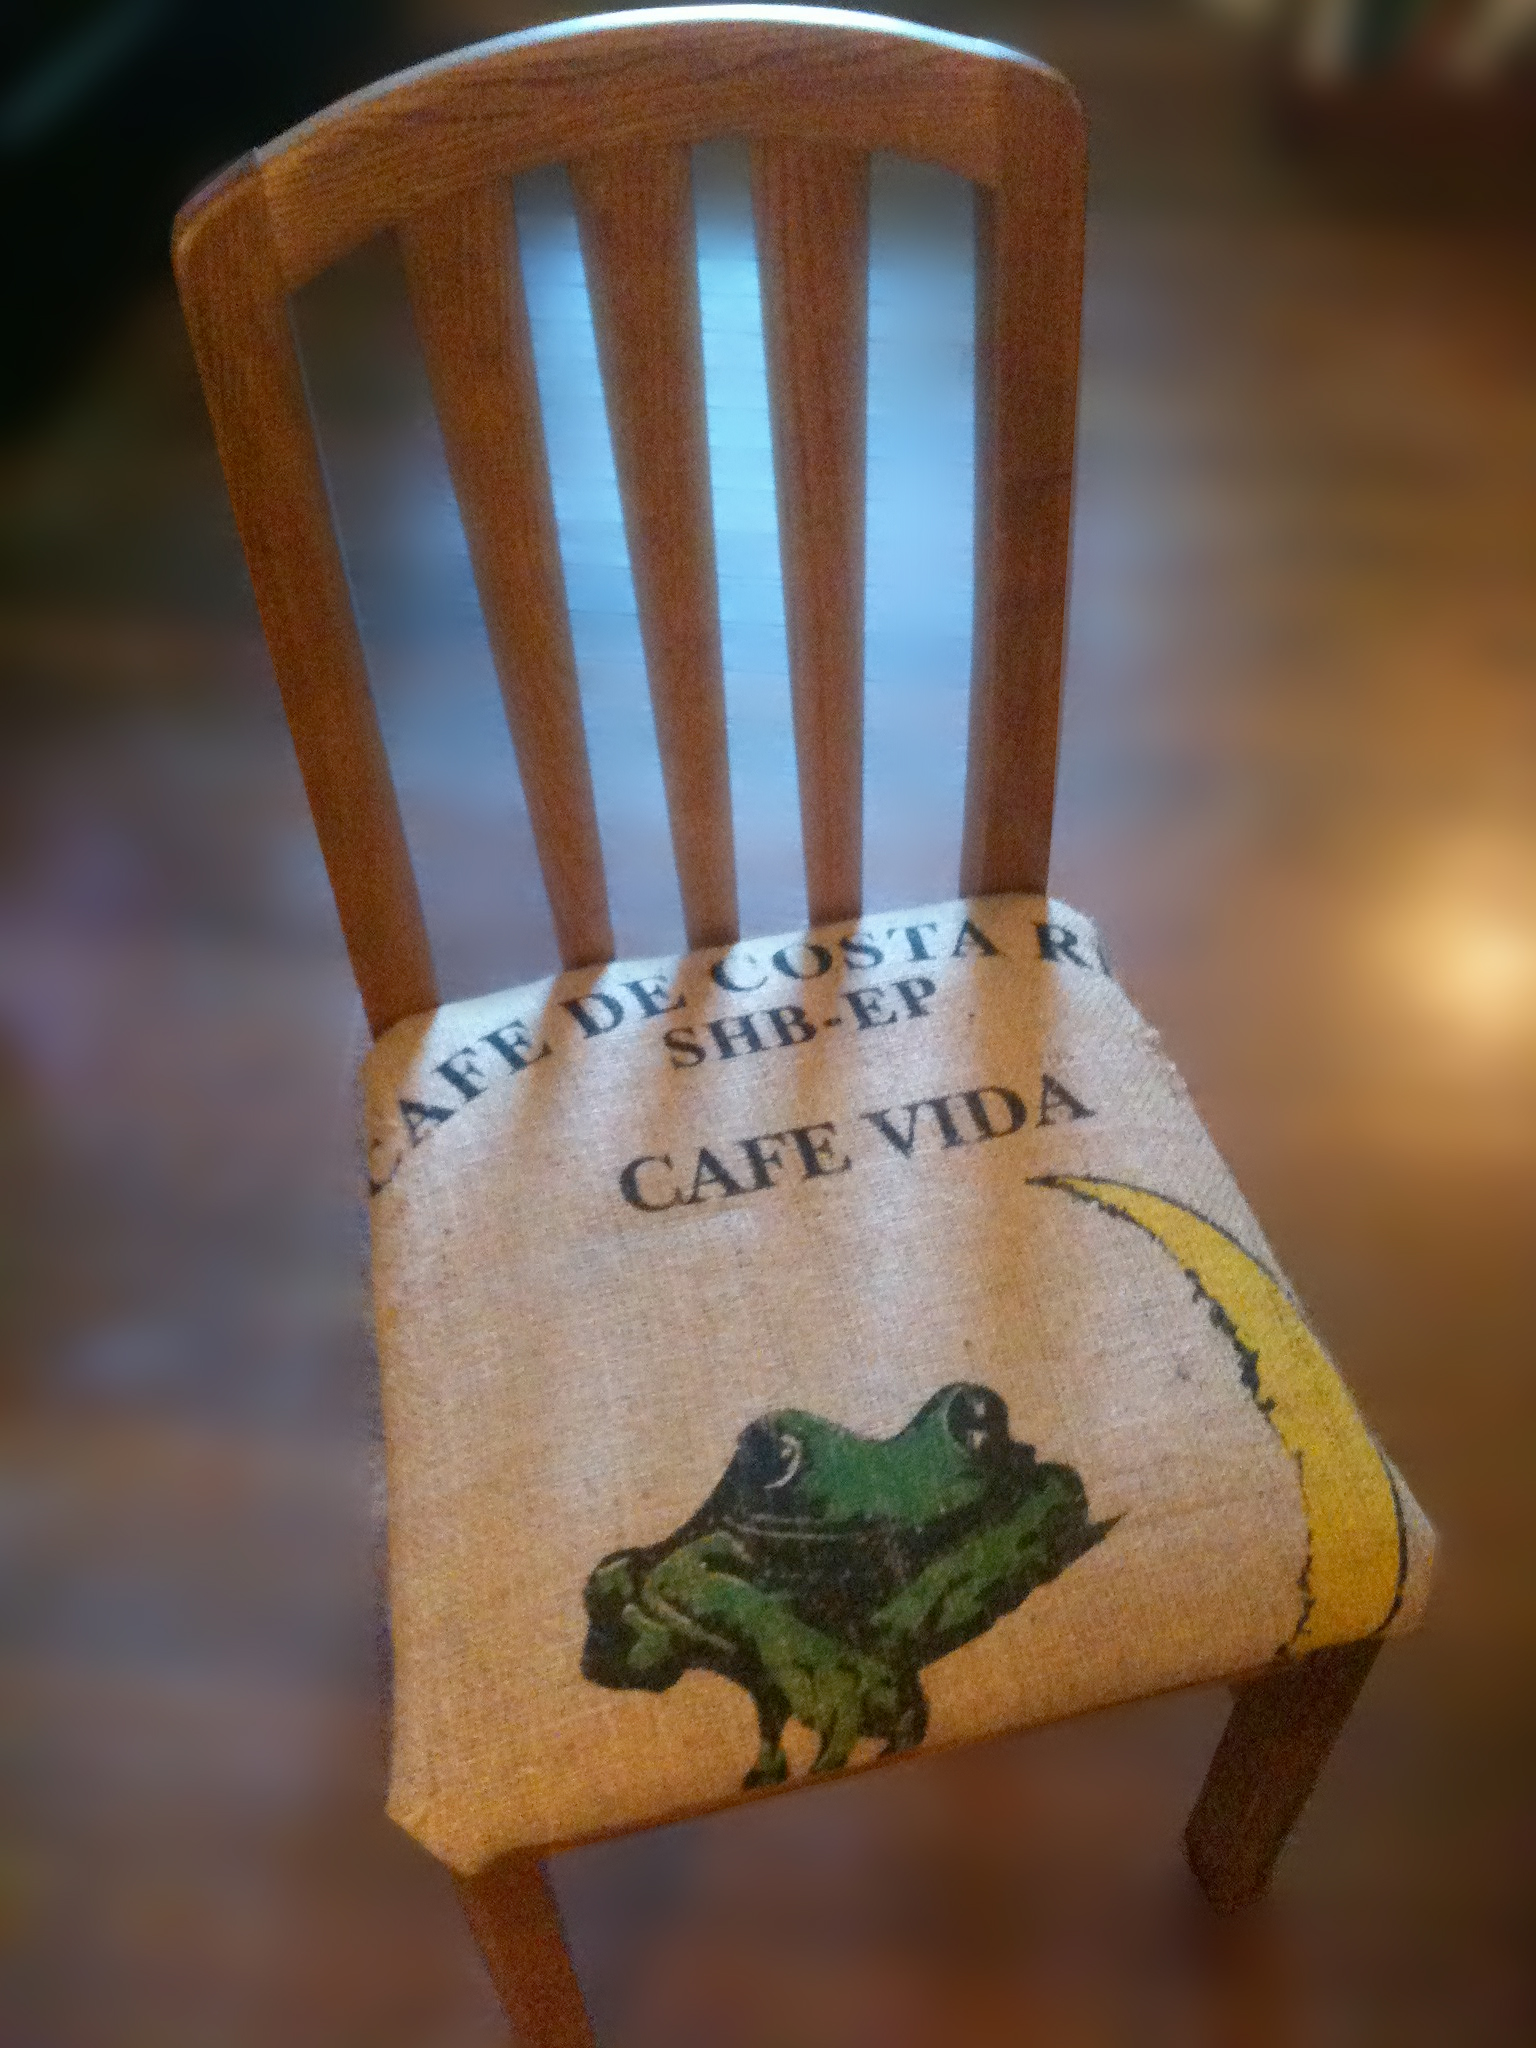 The Caffeinated Chair